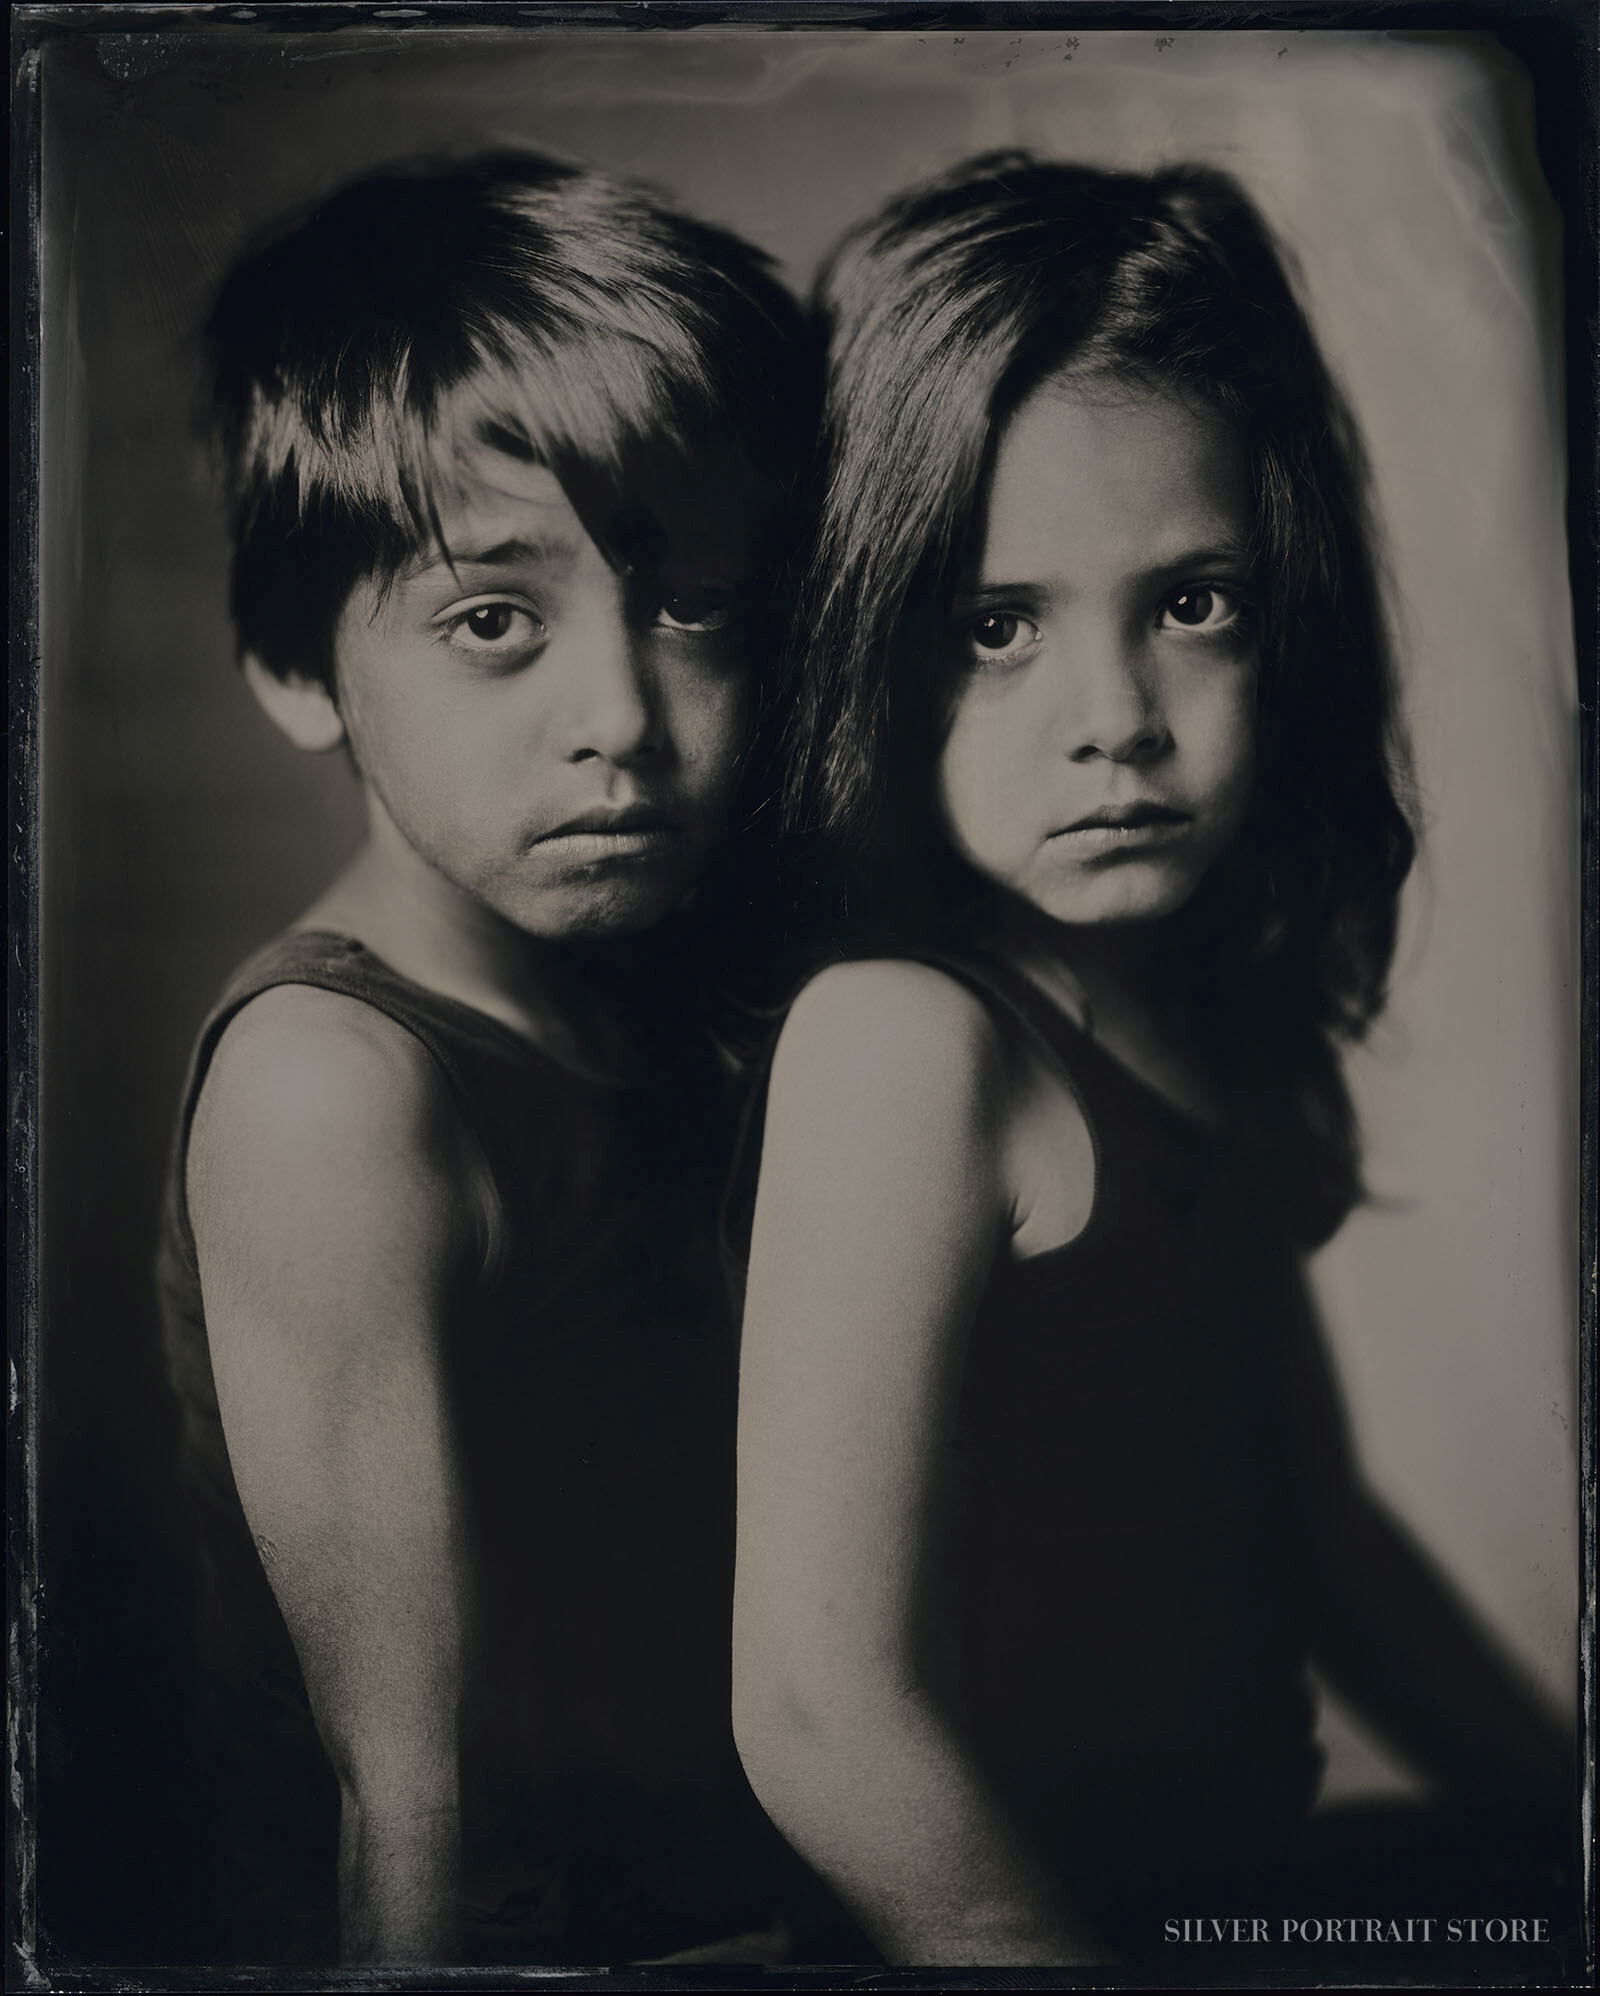 Marius & Dewi-Silver Portrait Store-Scan from Wet plate collodion-Tintype 20 x 25 cm.